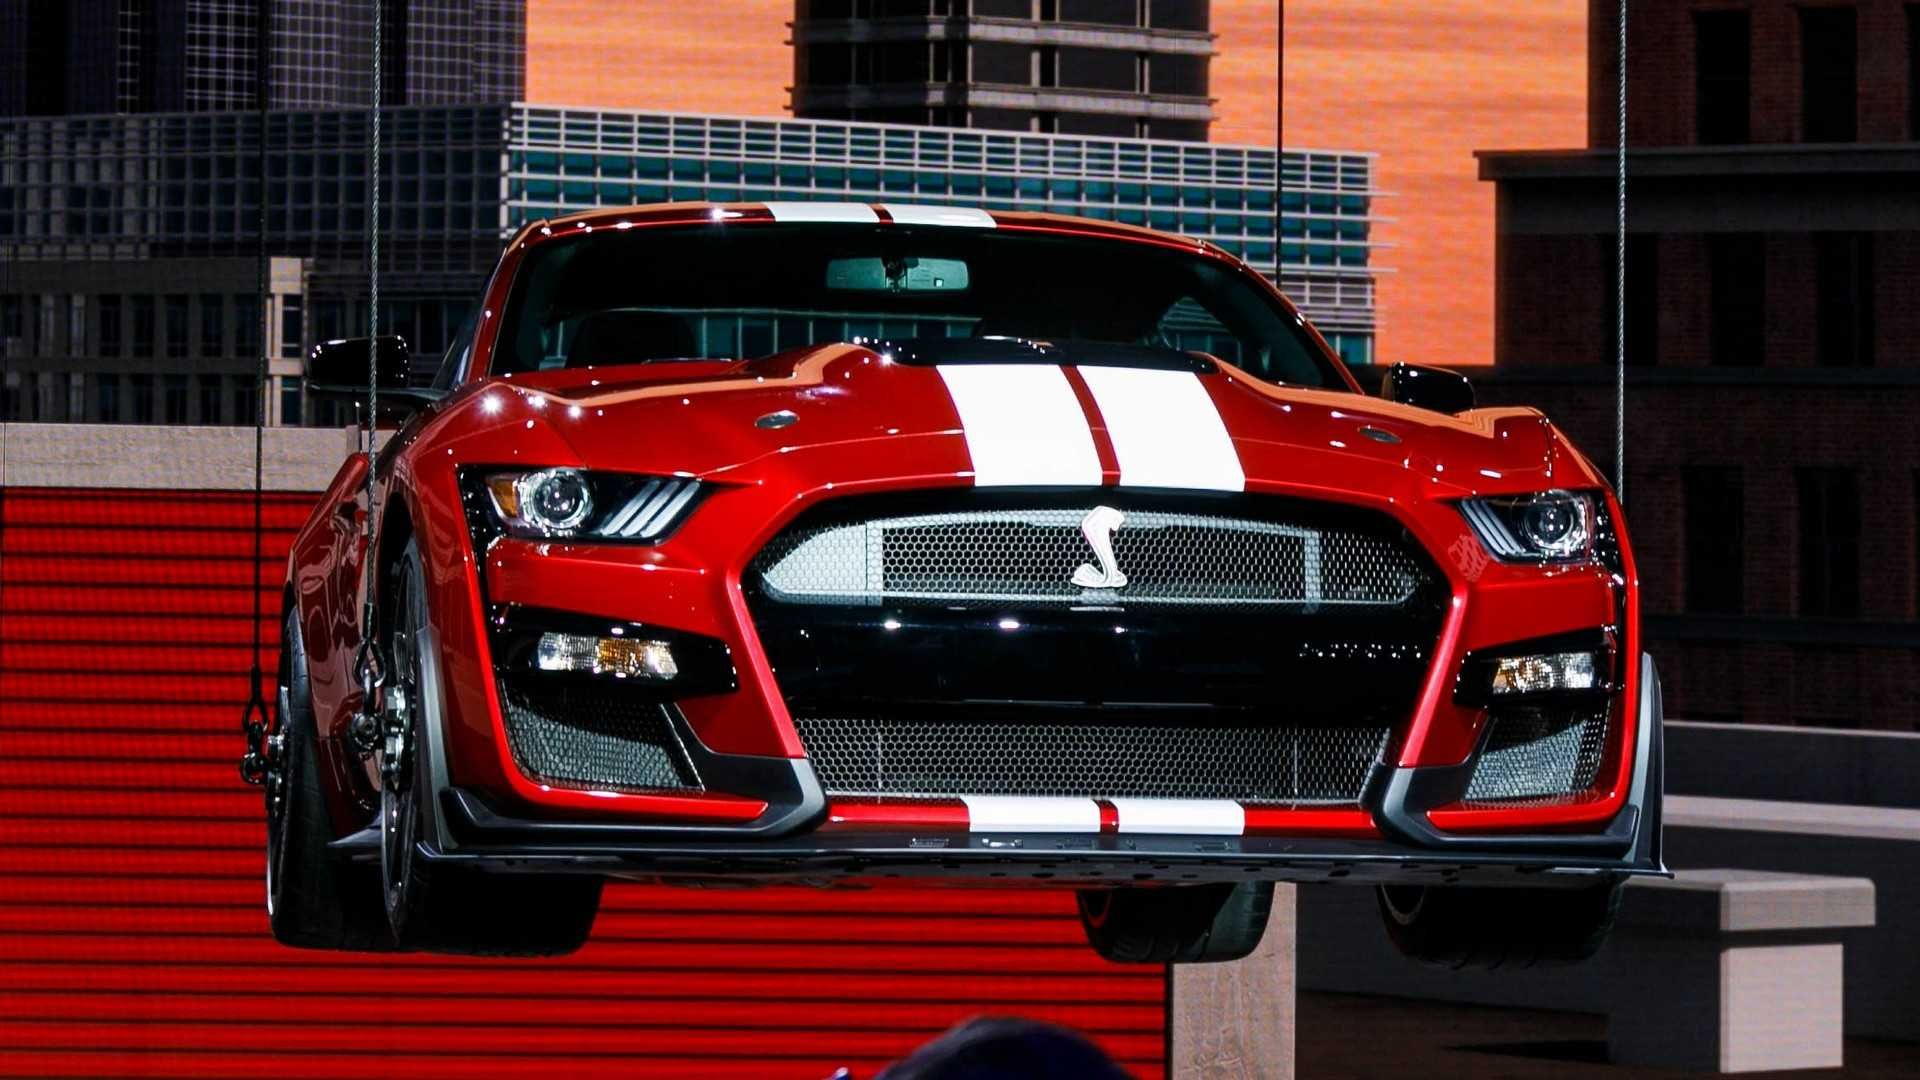 2020 Gt500 Mustang Curb Weight And Dimensions Revealed To Mustang Shelby Shelby Gt500 Mustang Gt500